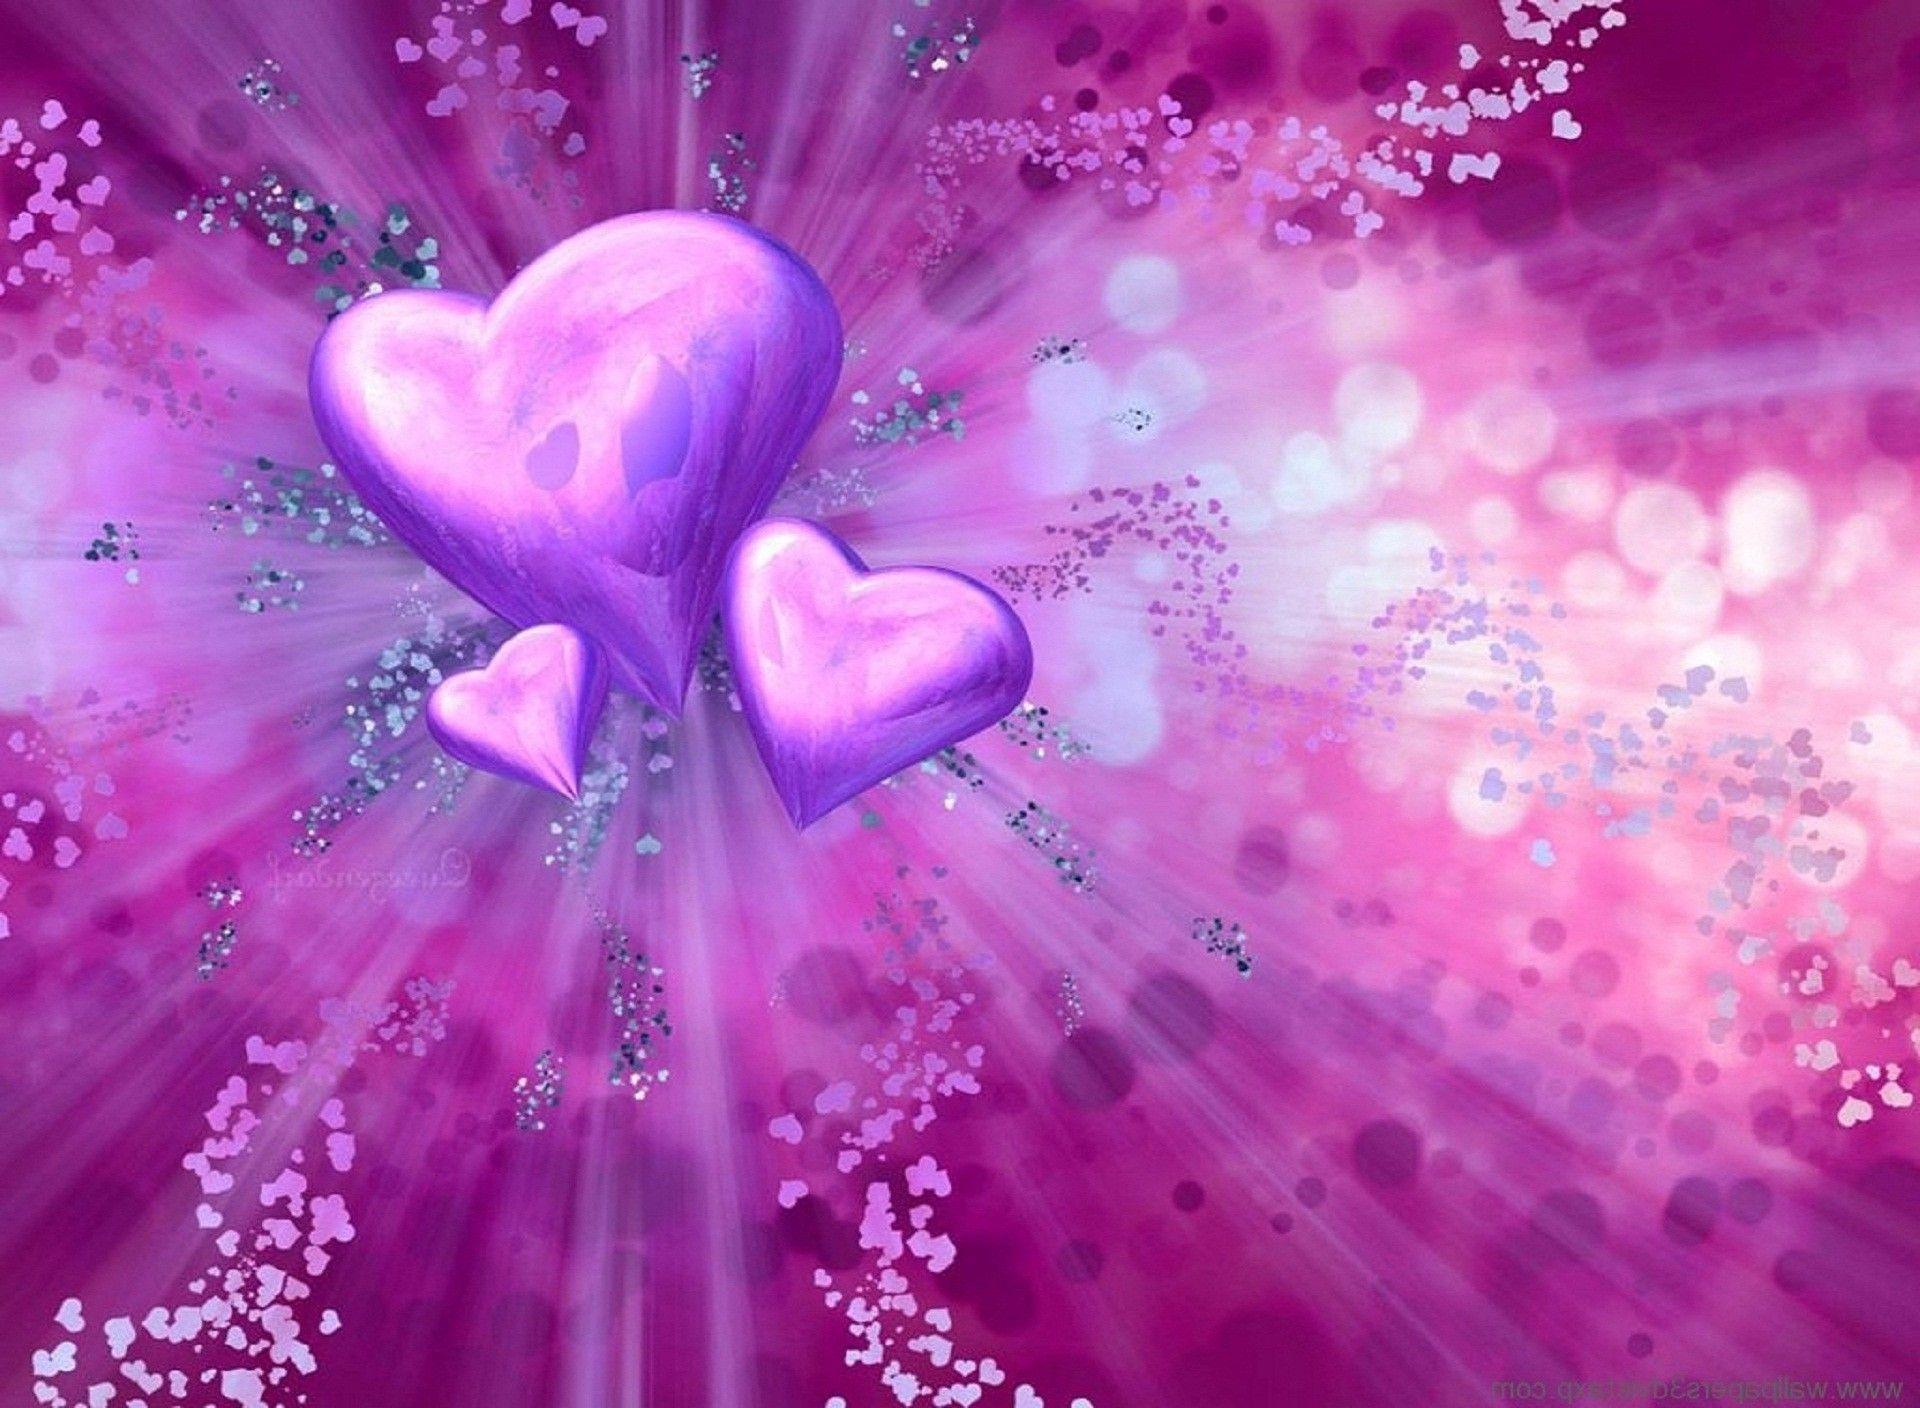 Love Desktop Wallpaper 3d : Love Wallpapers 3D - Wallpaper cave